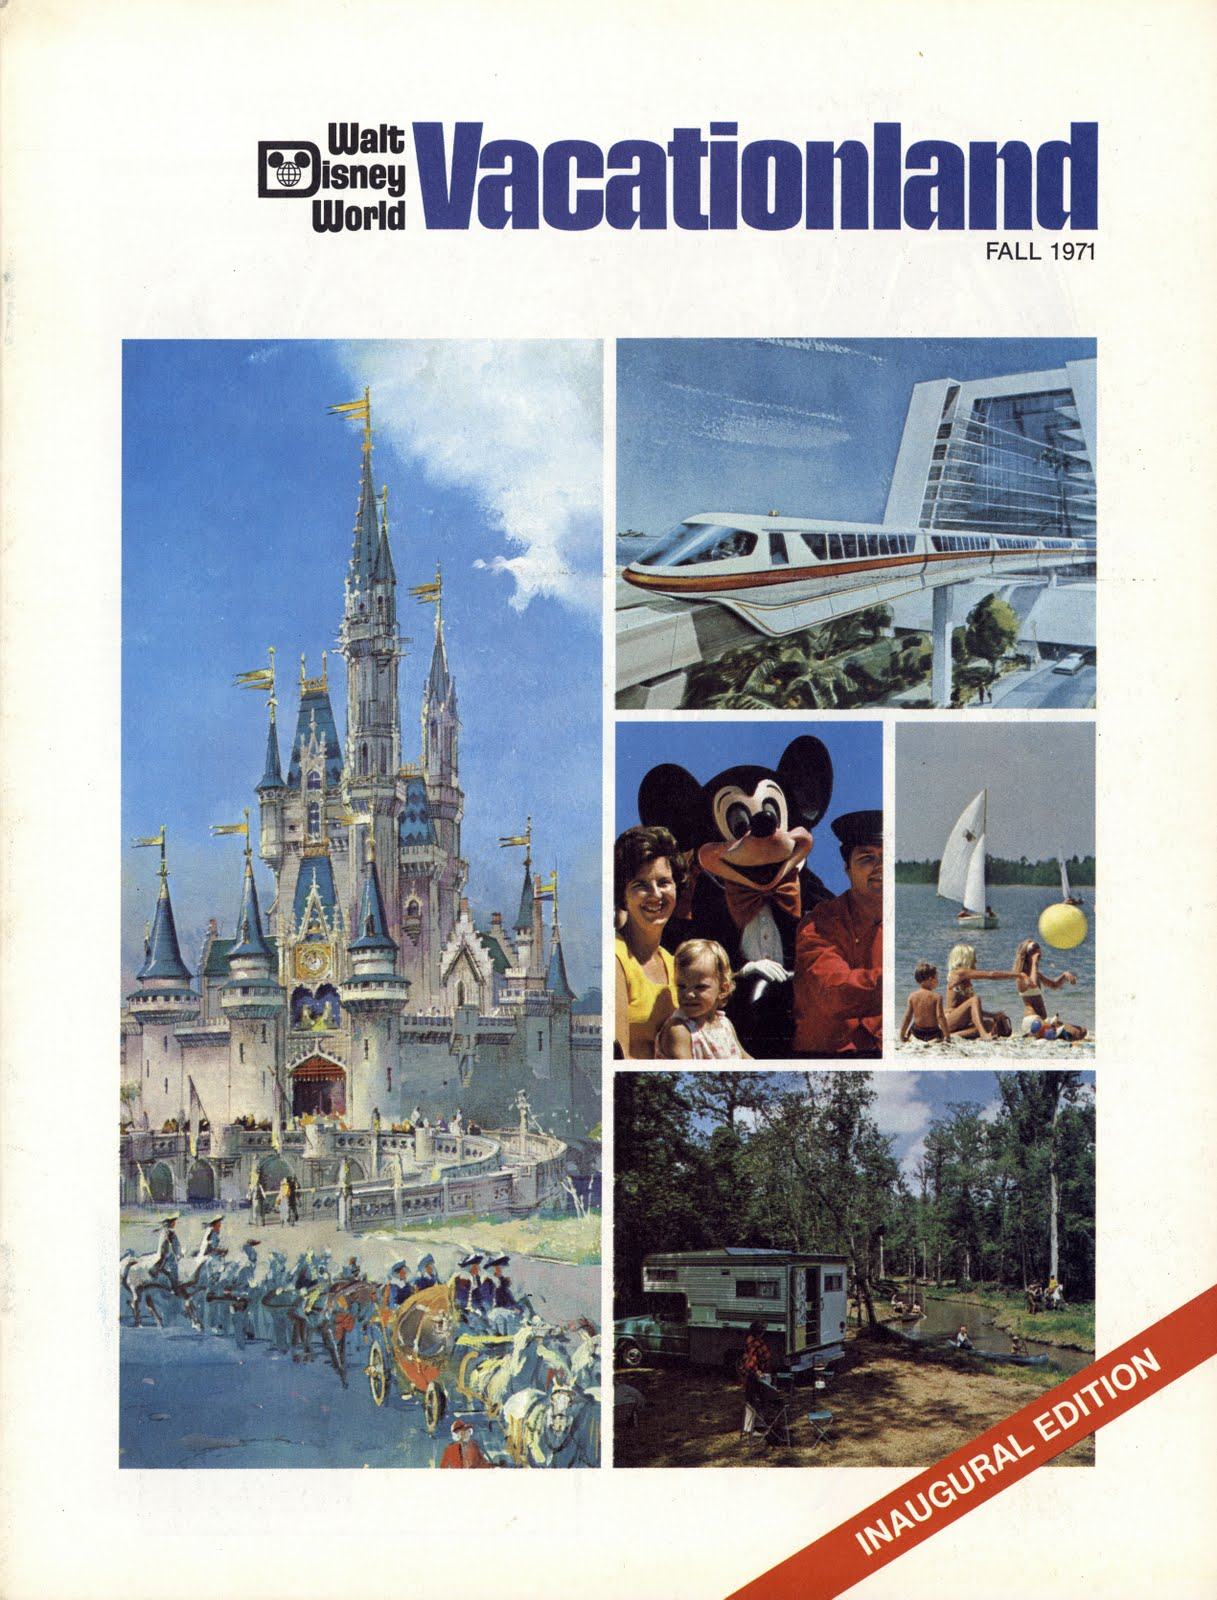 The Very FIRST Map Of Walt Disney World, Its Sure Looks Fun Doesnu0027t It?